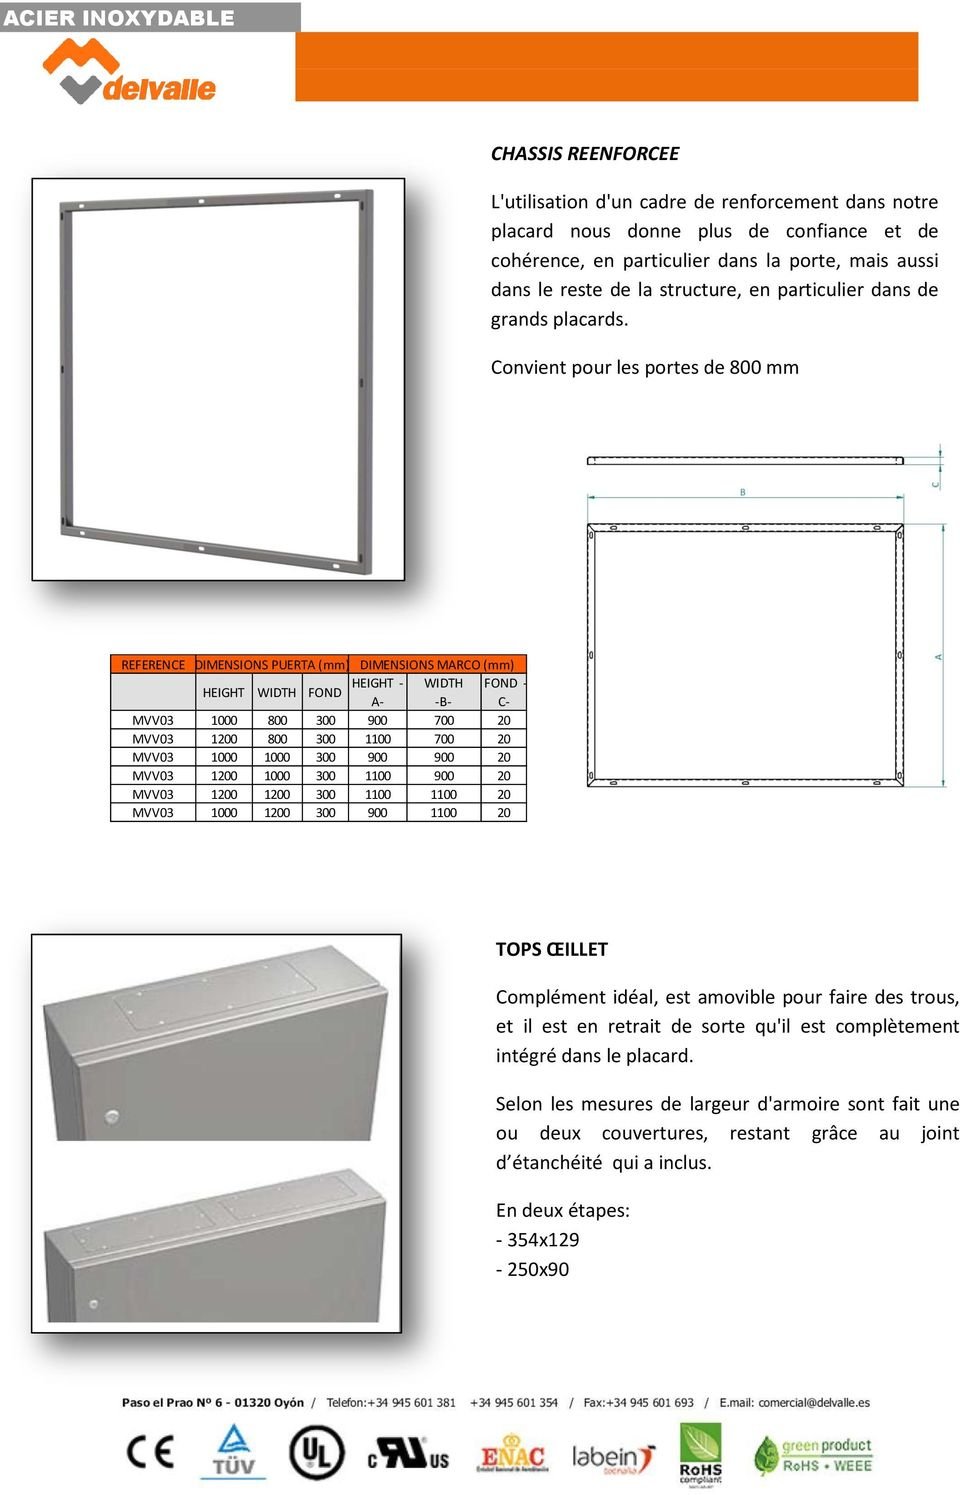 Convient pour les portes de 800 mm REFERENCE DIMENSIONS PUERTA (mm) DIMENSIONS MARCO (mm) HEIGHT HEIGHT - WIDTH FOND - WIDTH FOND A- -B- C- MVV03 1000 800 300 900 700 20 MVV03 1200 800 300 1100 700